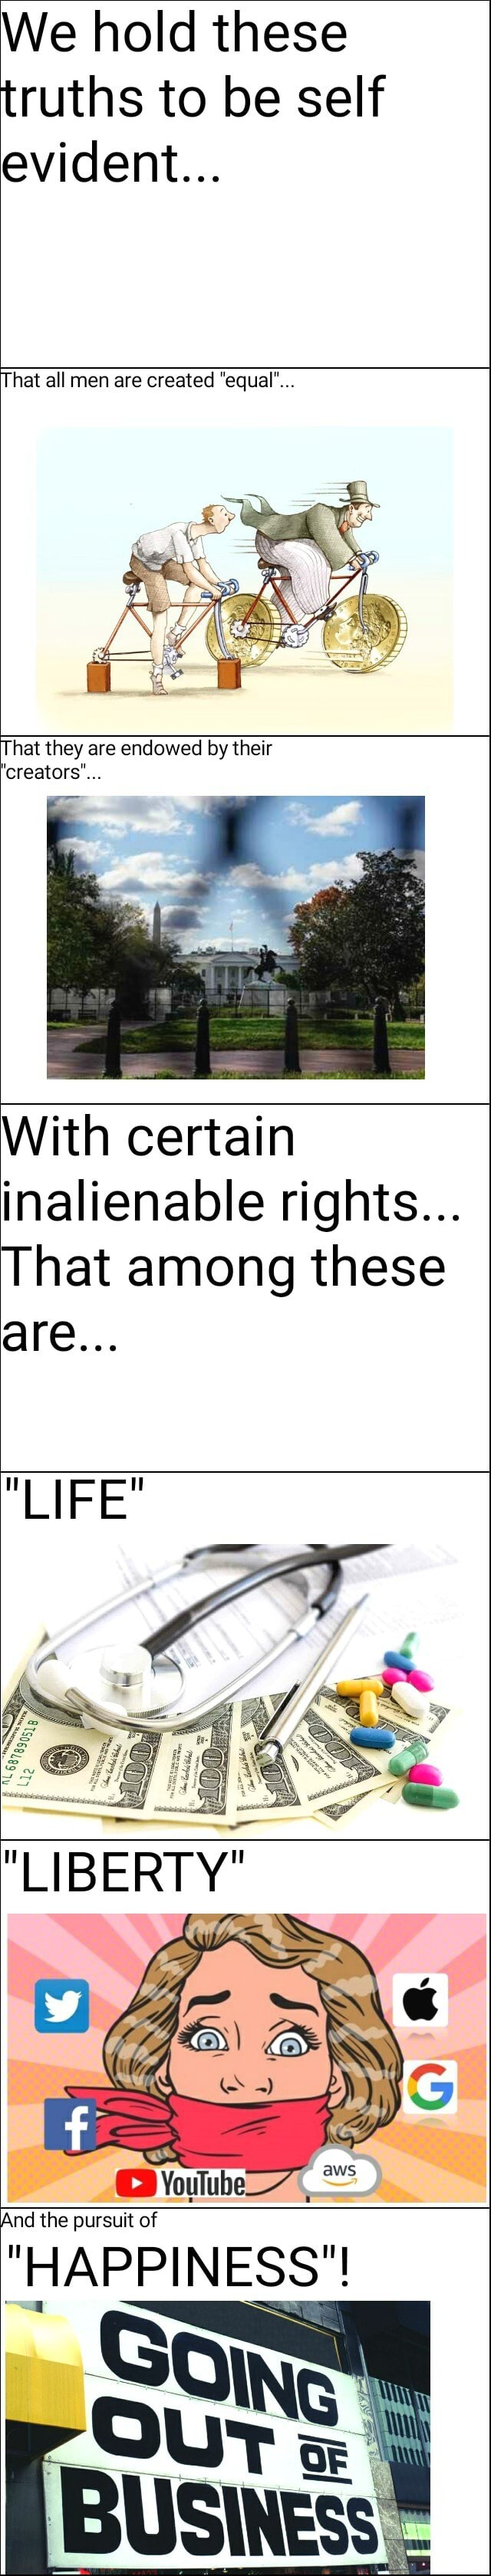 We hold these truths to be self evident That all men are created equal' That they are endowed by their creators'. With certain inalienable rights That among these are LIFE LIBERTY And the pursuit of HAPPINESS meme